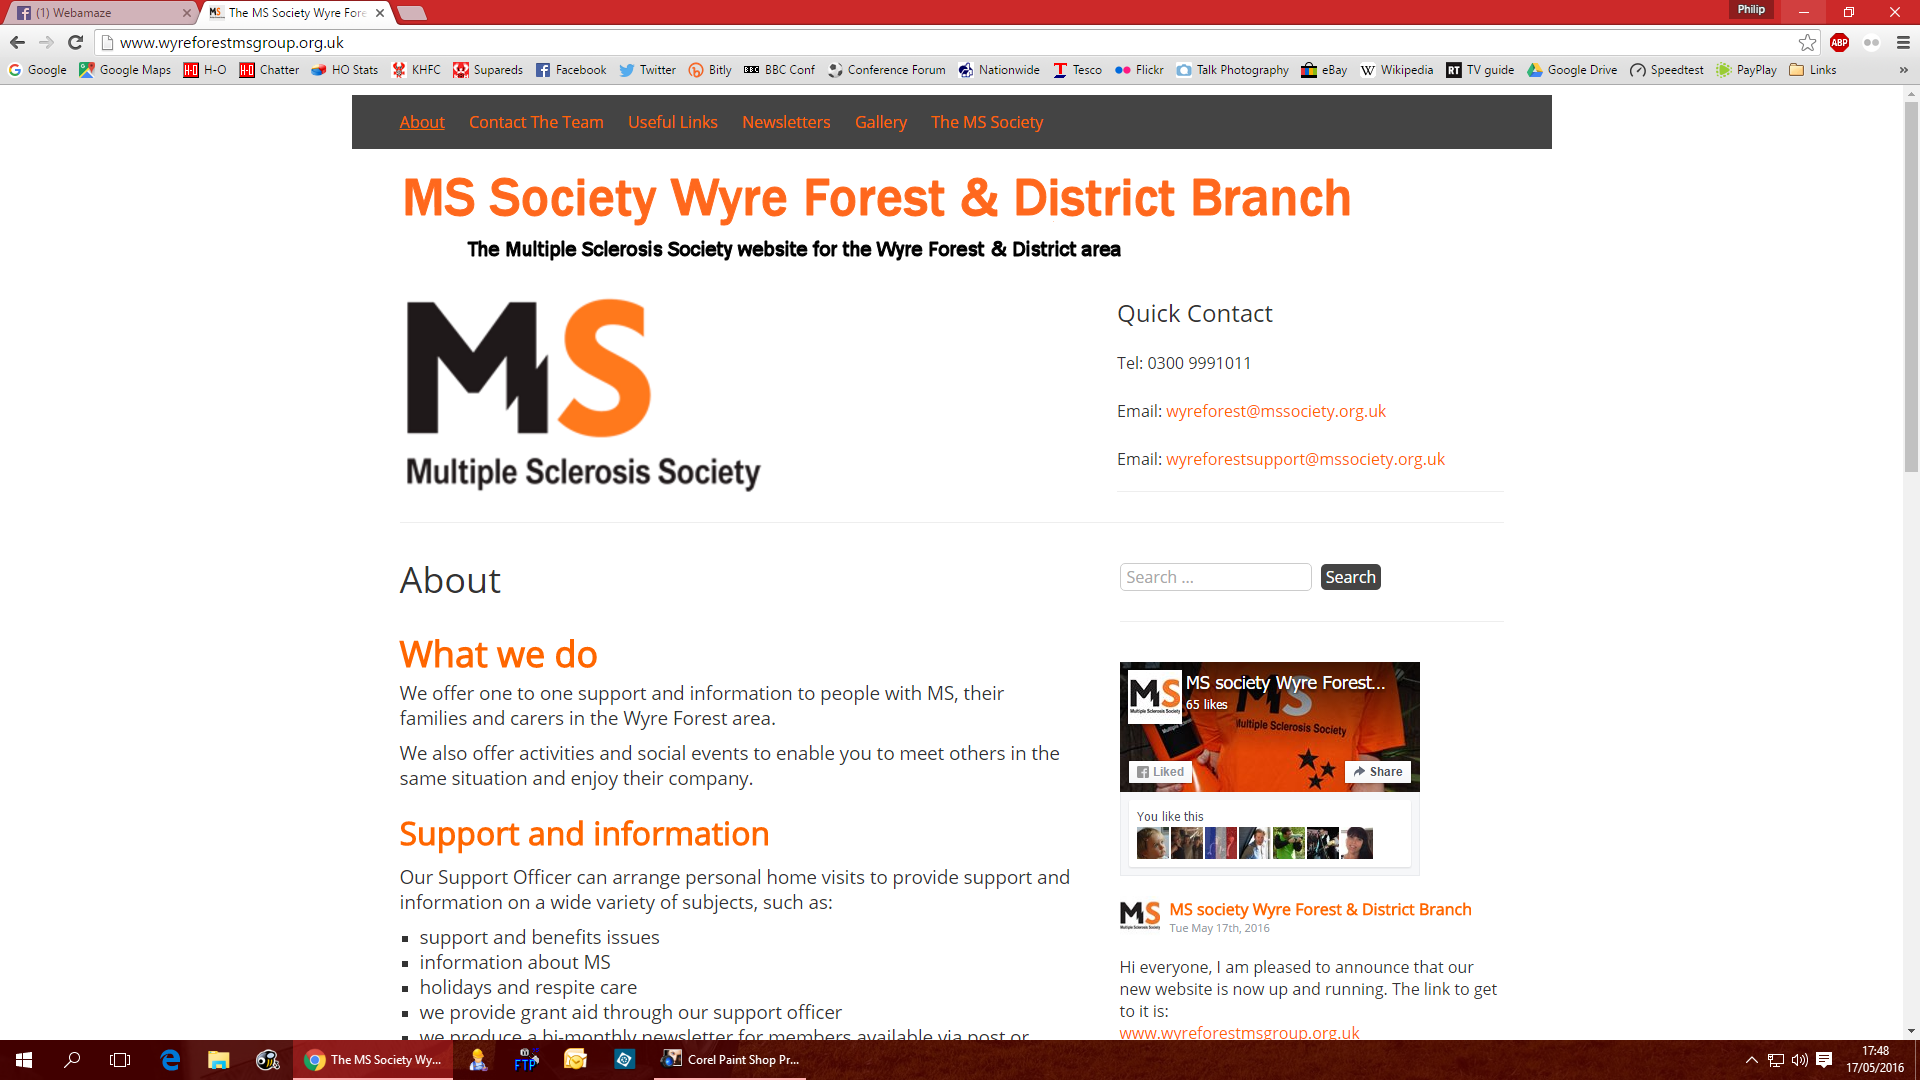 MS Society Wyre Forest & District Branch - The remit was to create a simple website for this group of Multiple Sclerosis sufferers. The site was developed with accessibility to the forefront